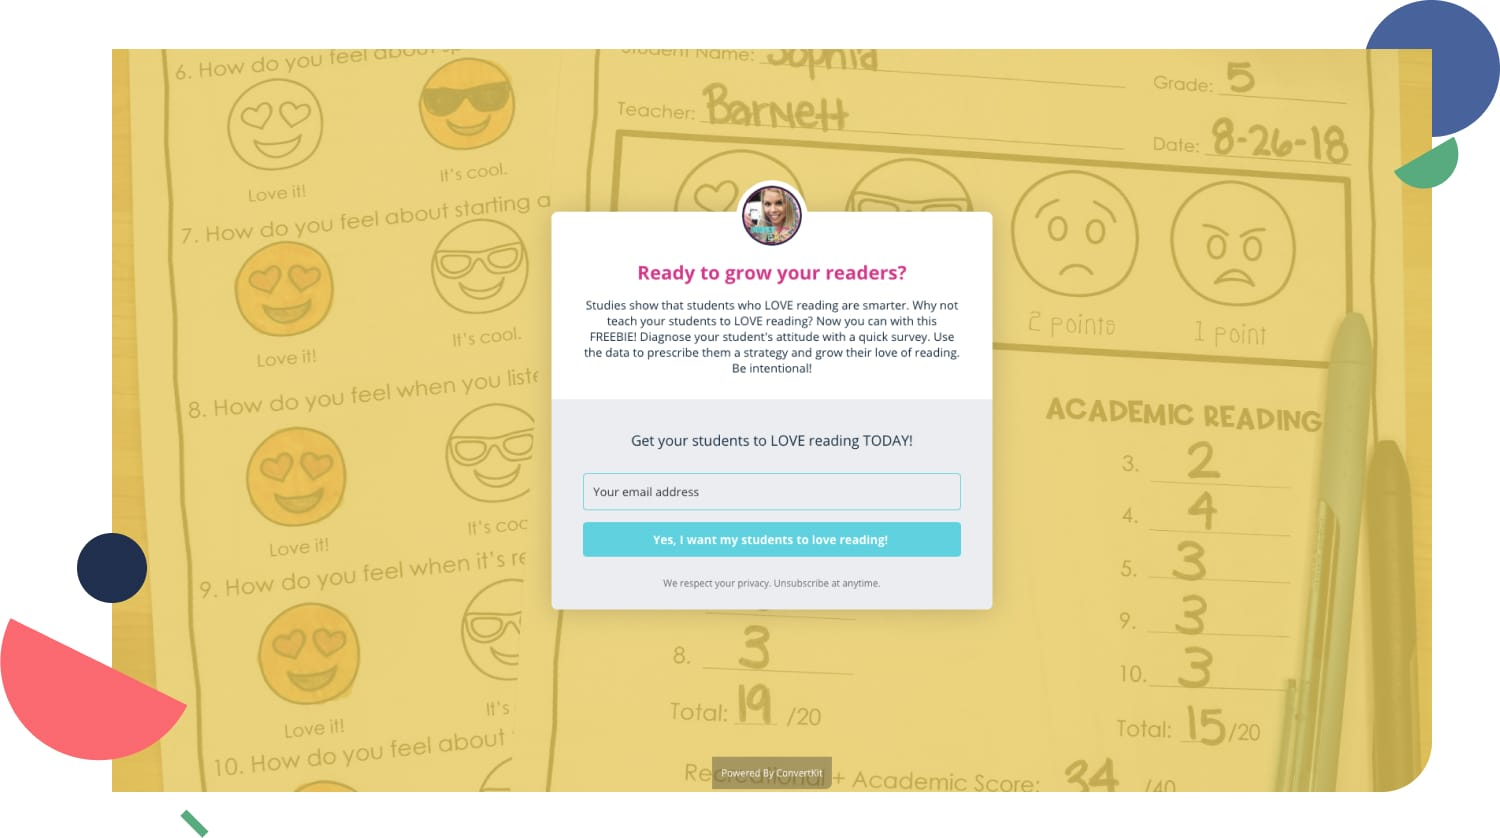 10 Downloadable Lead Magnets To Grow Your Email List